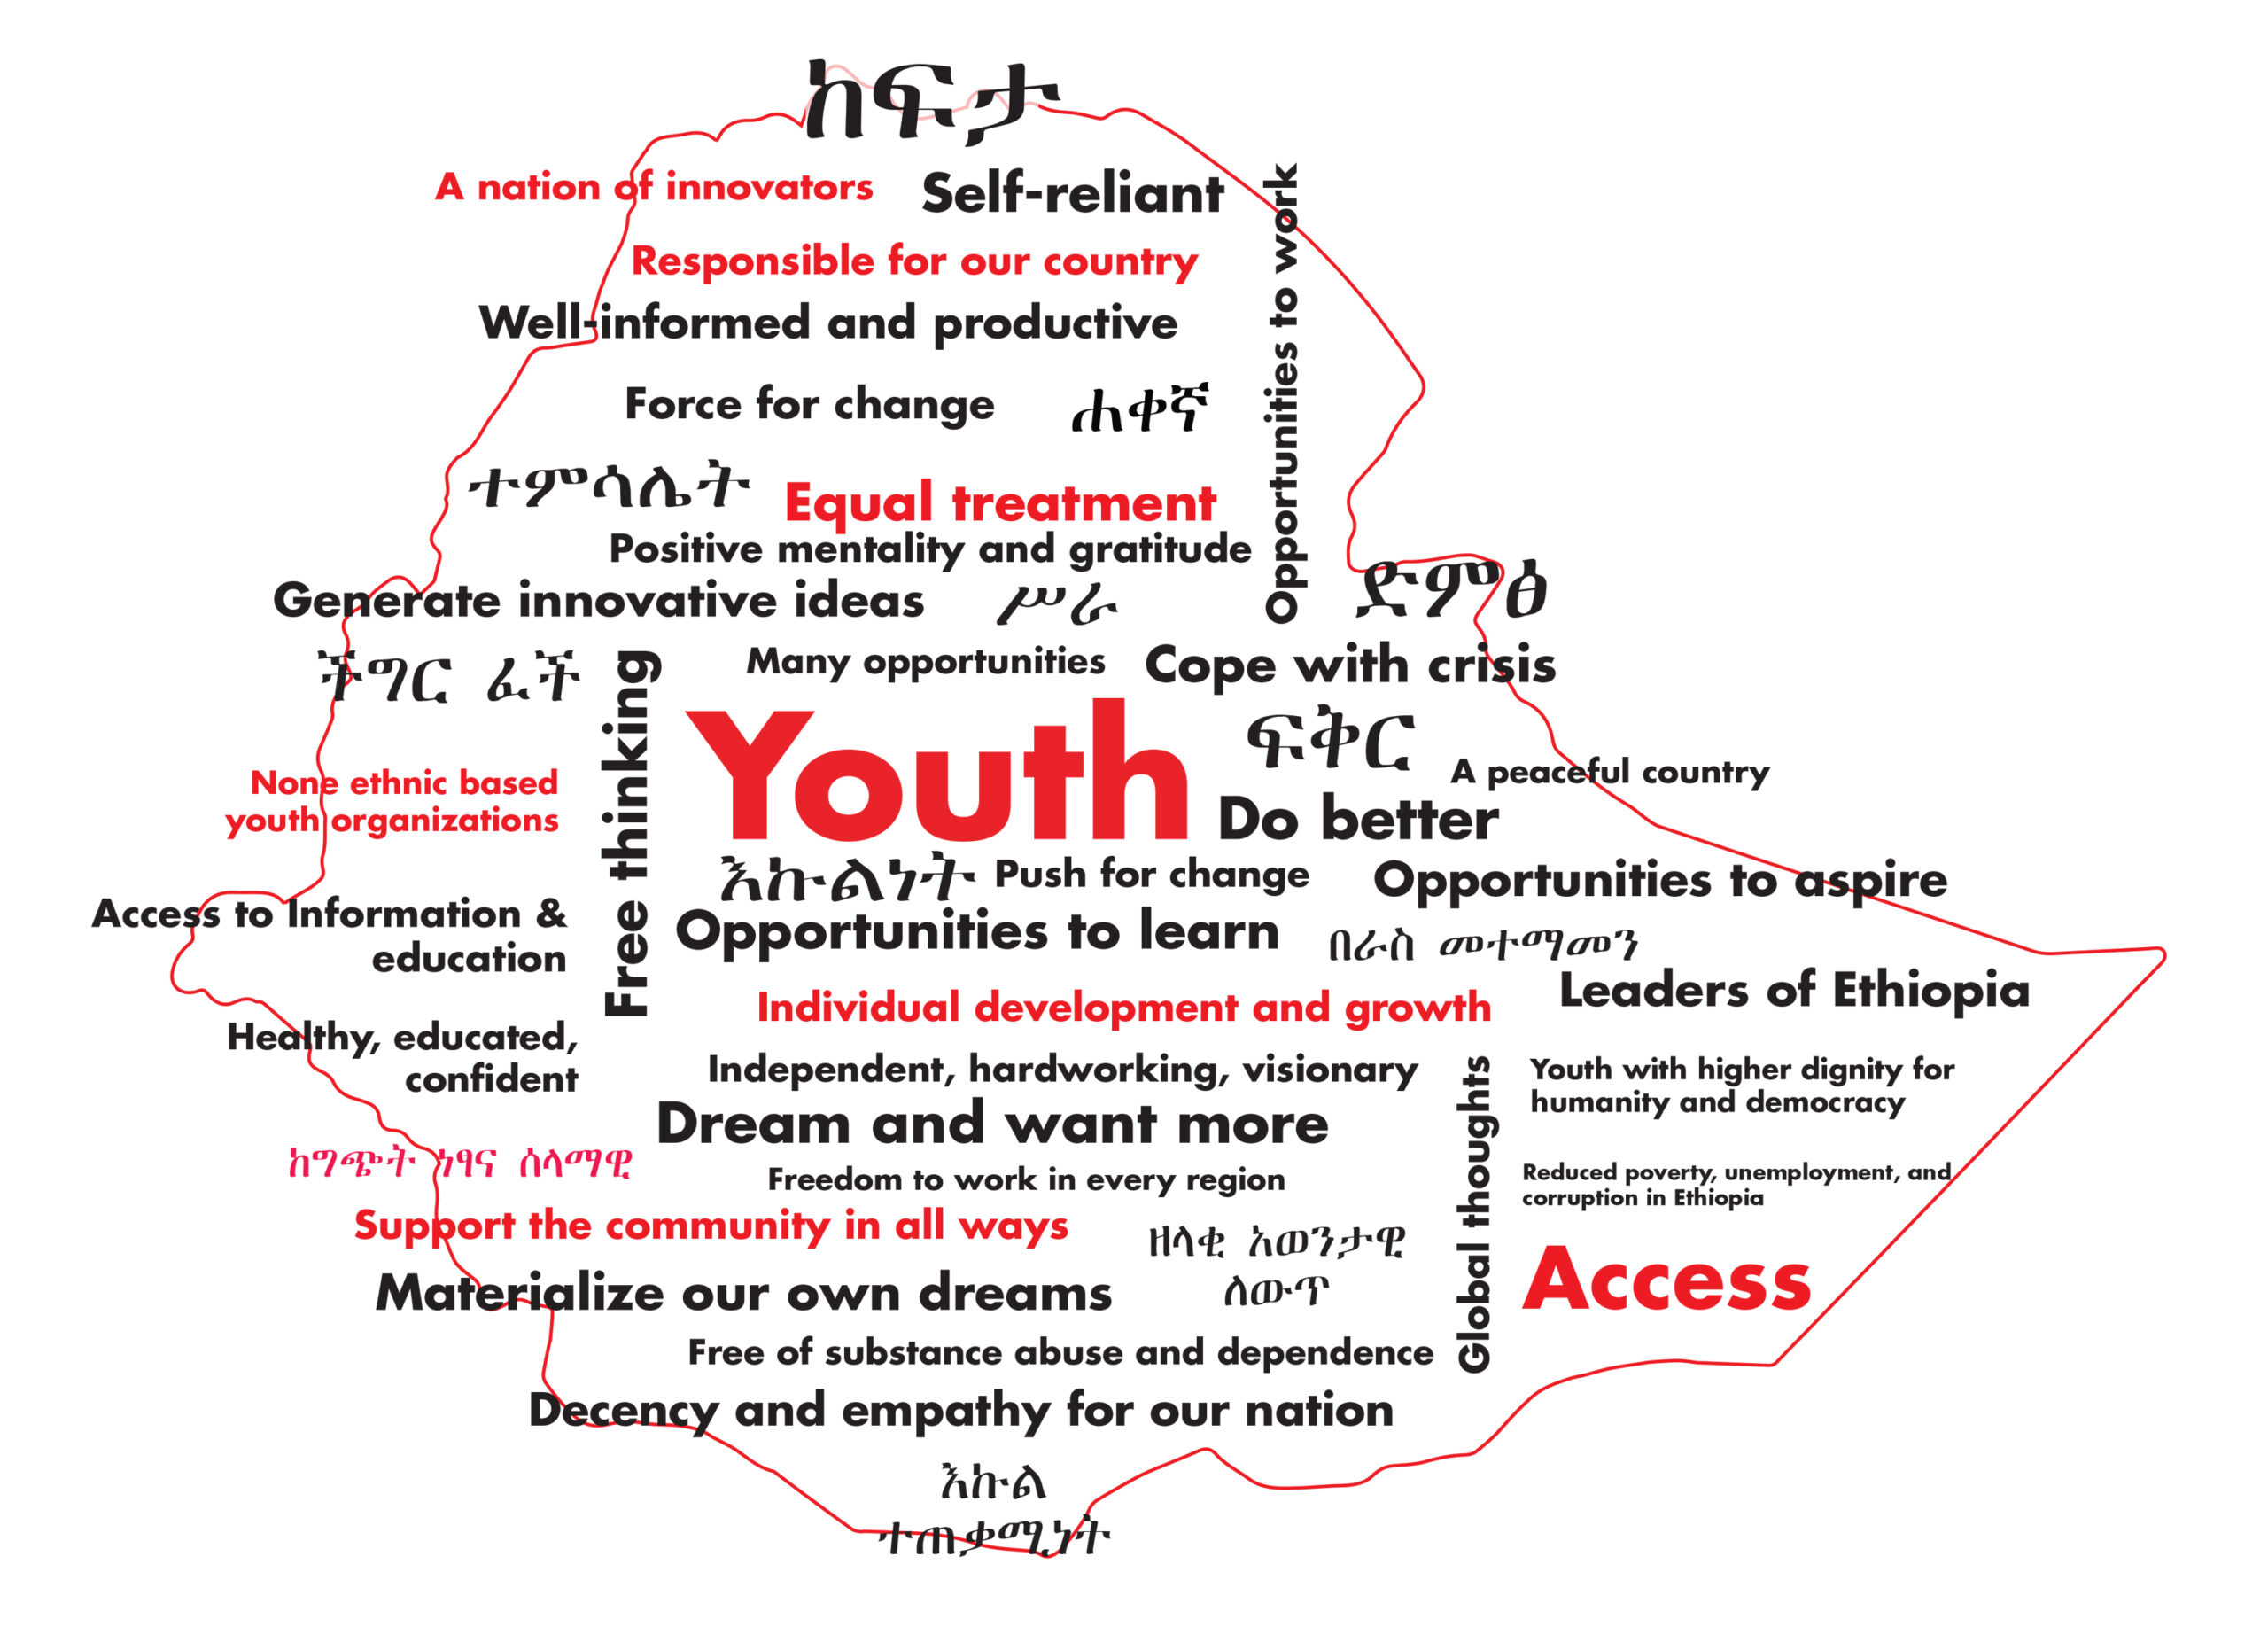 Youth Vision map